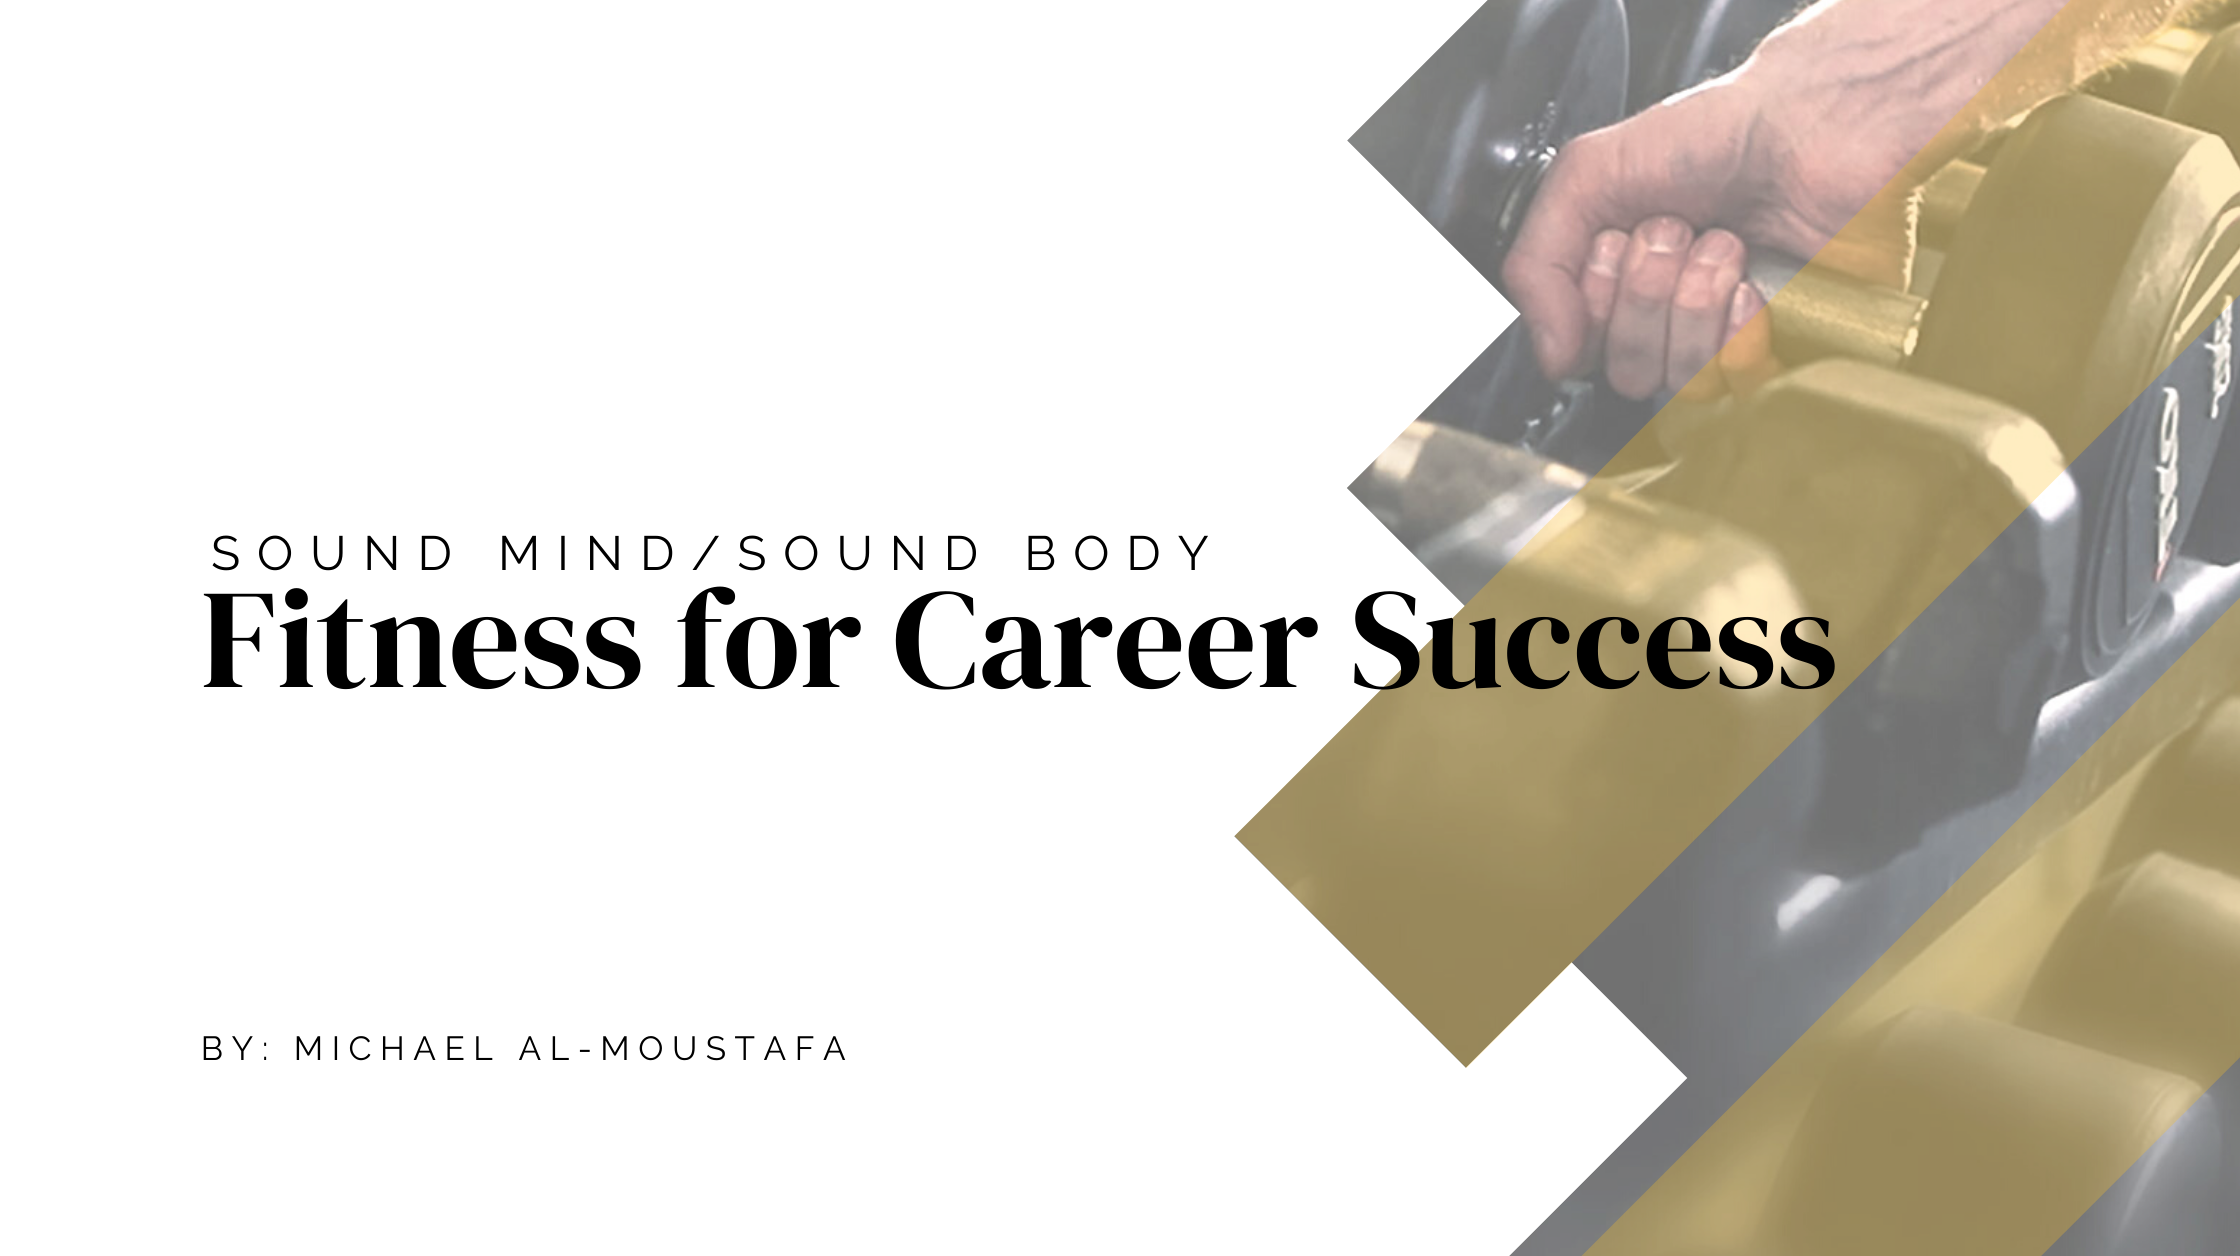 Sound Mind/Sound Body: Fitness for Career Success